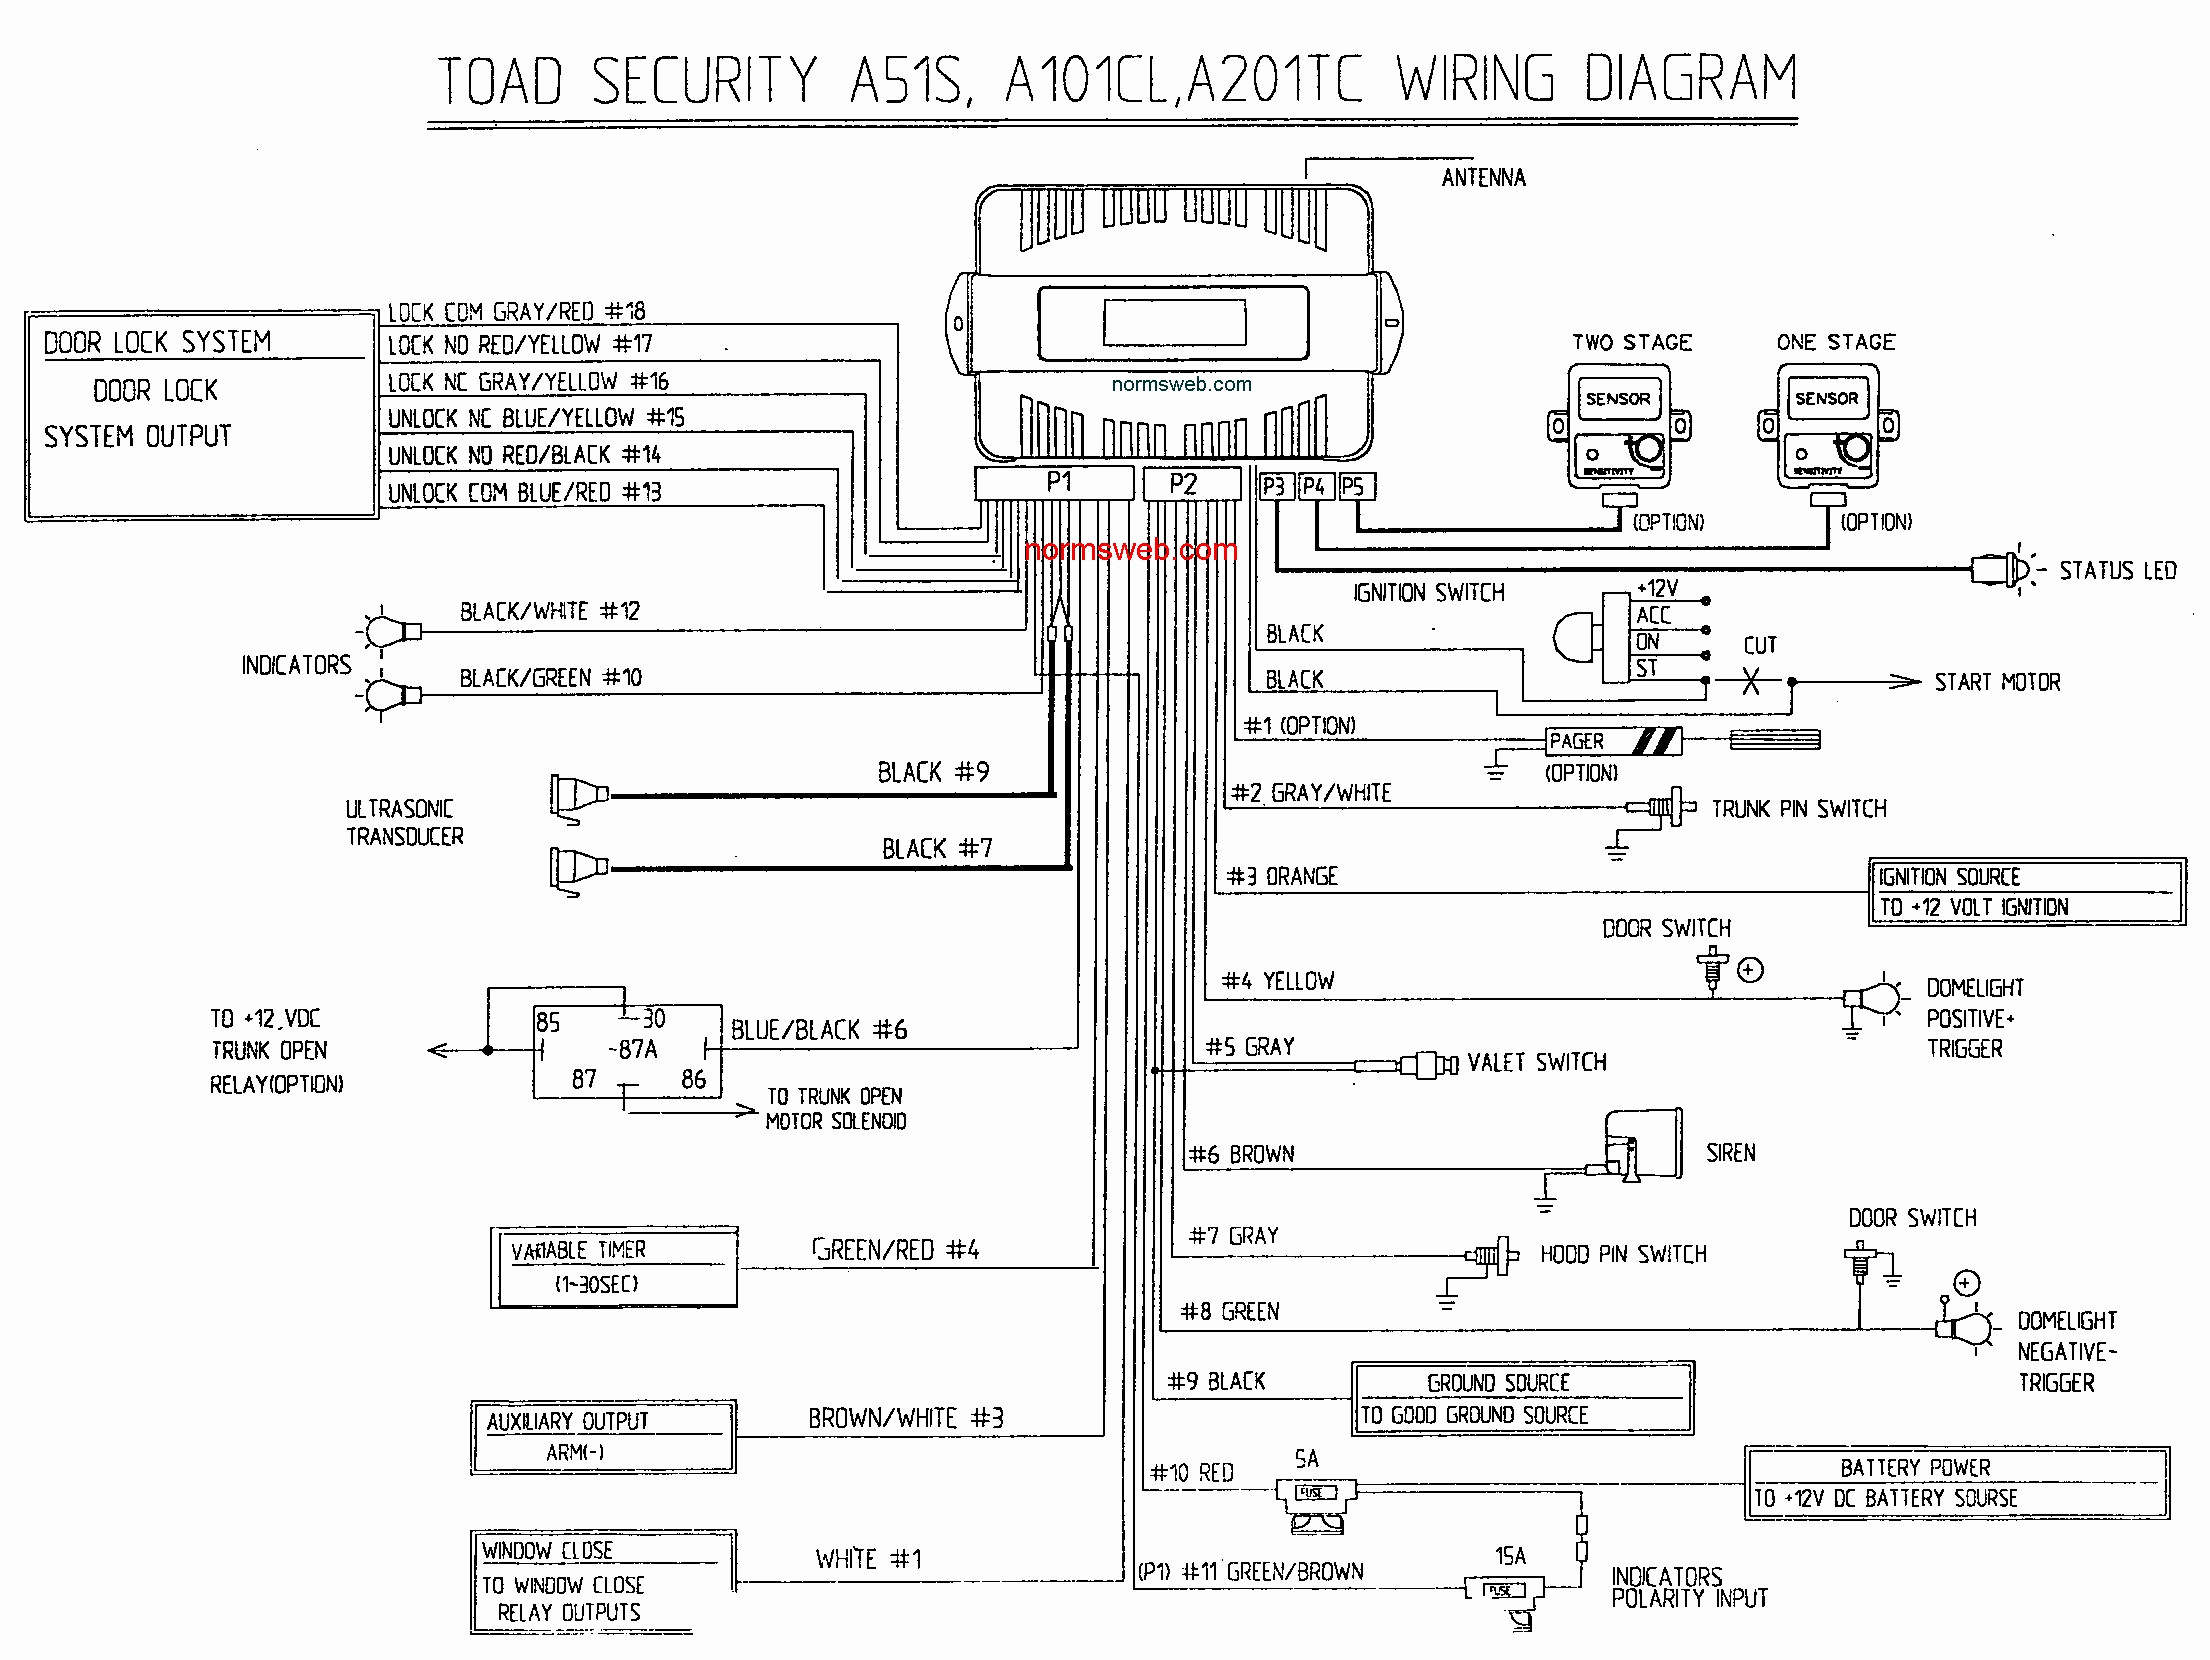 bulldog security alarm wiring diagram Download-Wiring Diagram Intruder Alarm New Wiring Diagram Car Alarm Wiring Diagram Unique Bulldog Security 18-t